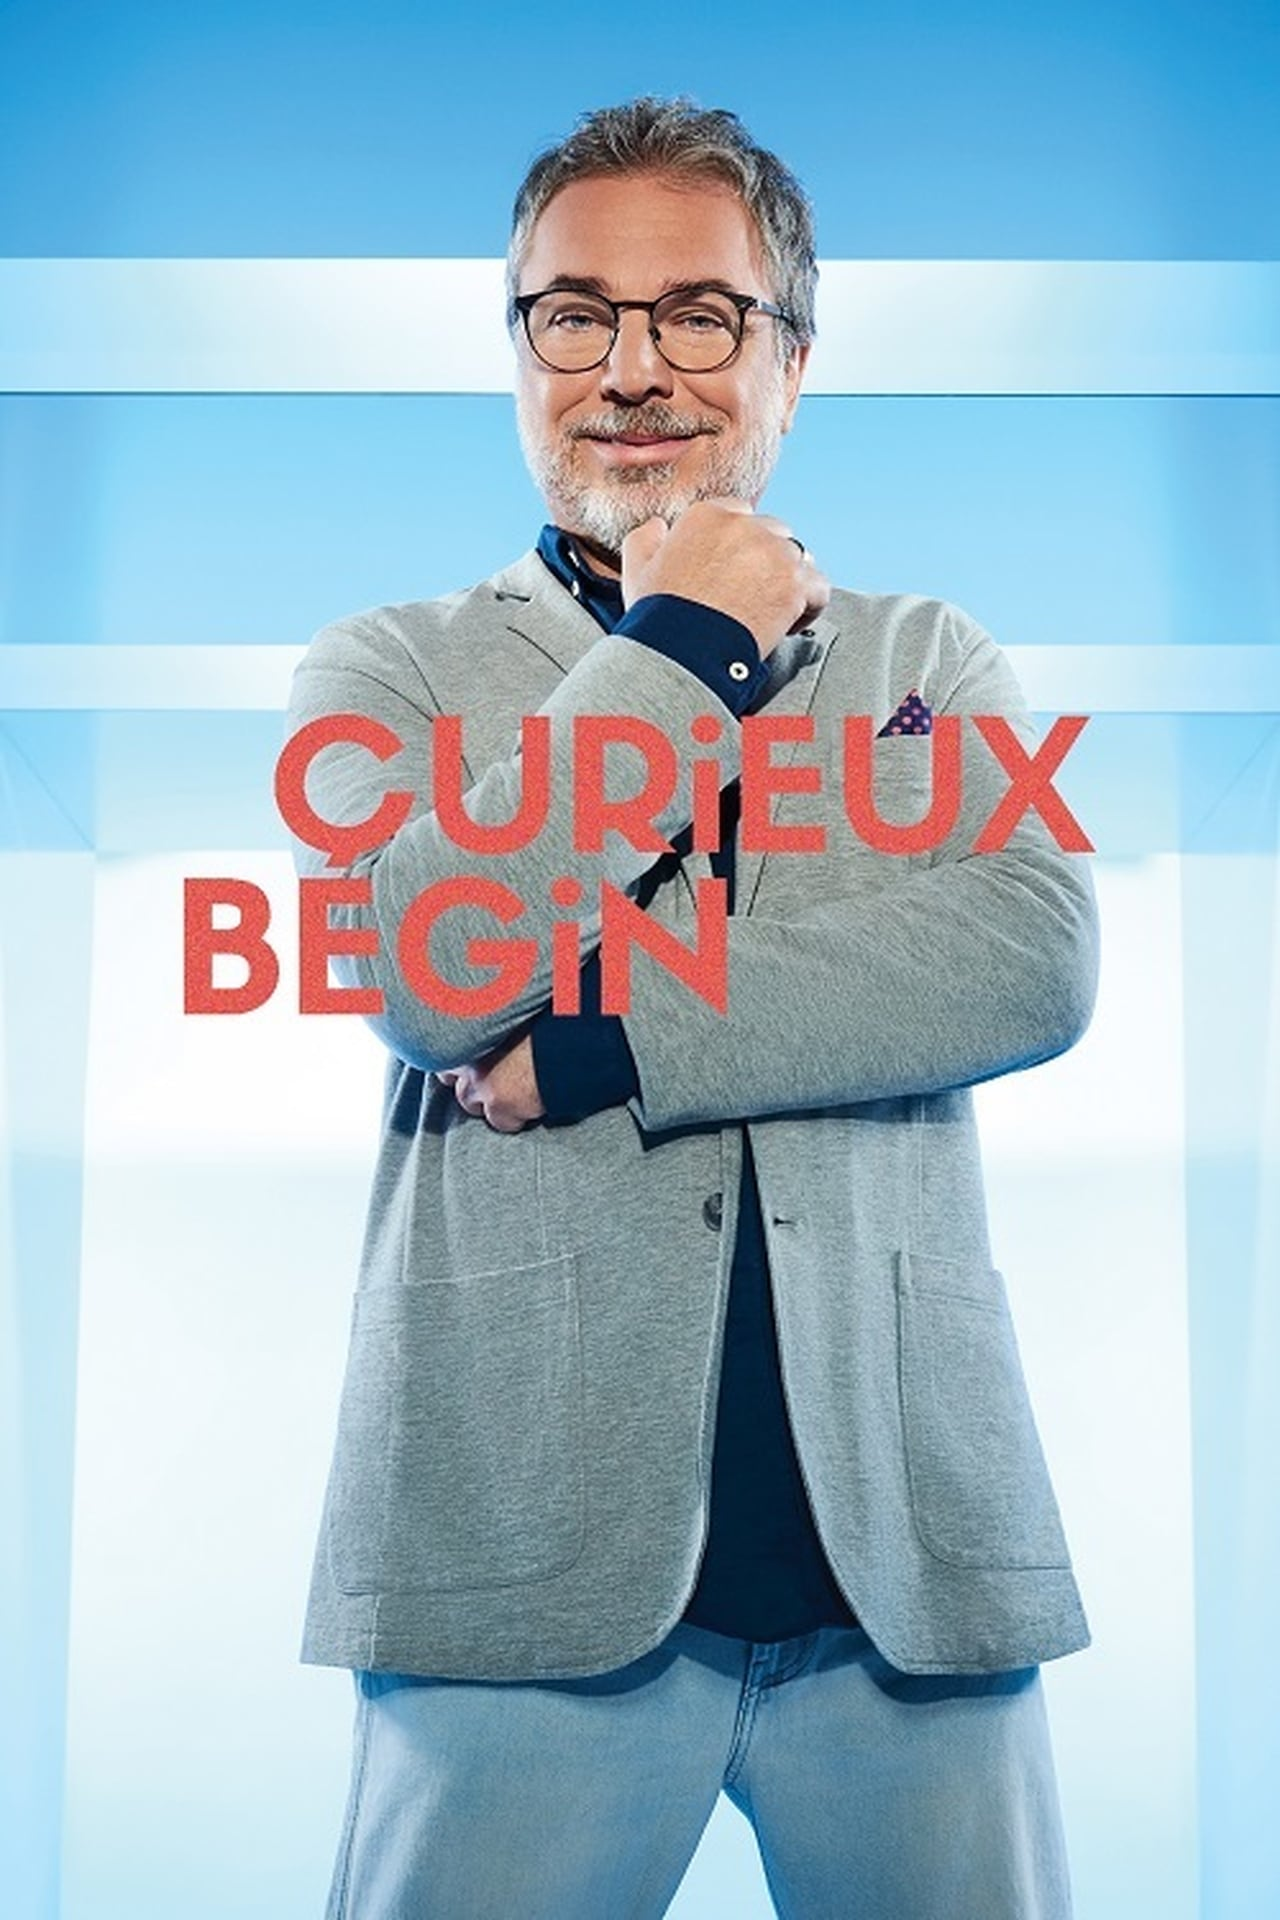 Putlocker Curieux Bégin Season 6 (2013)